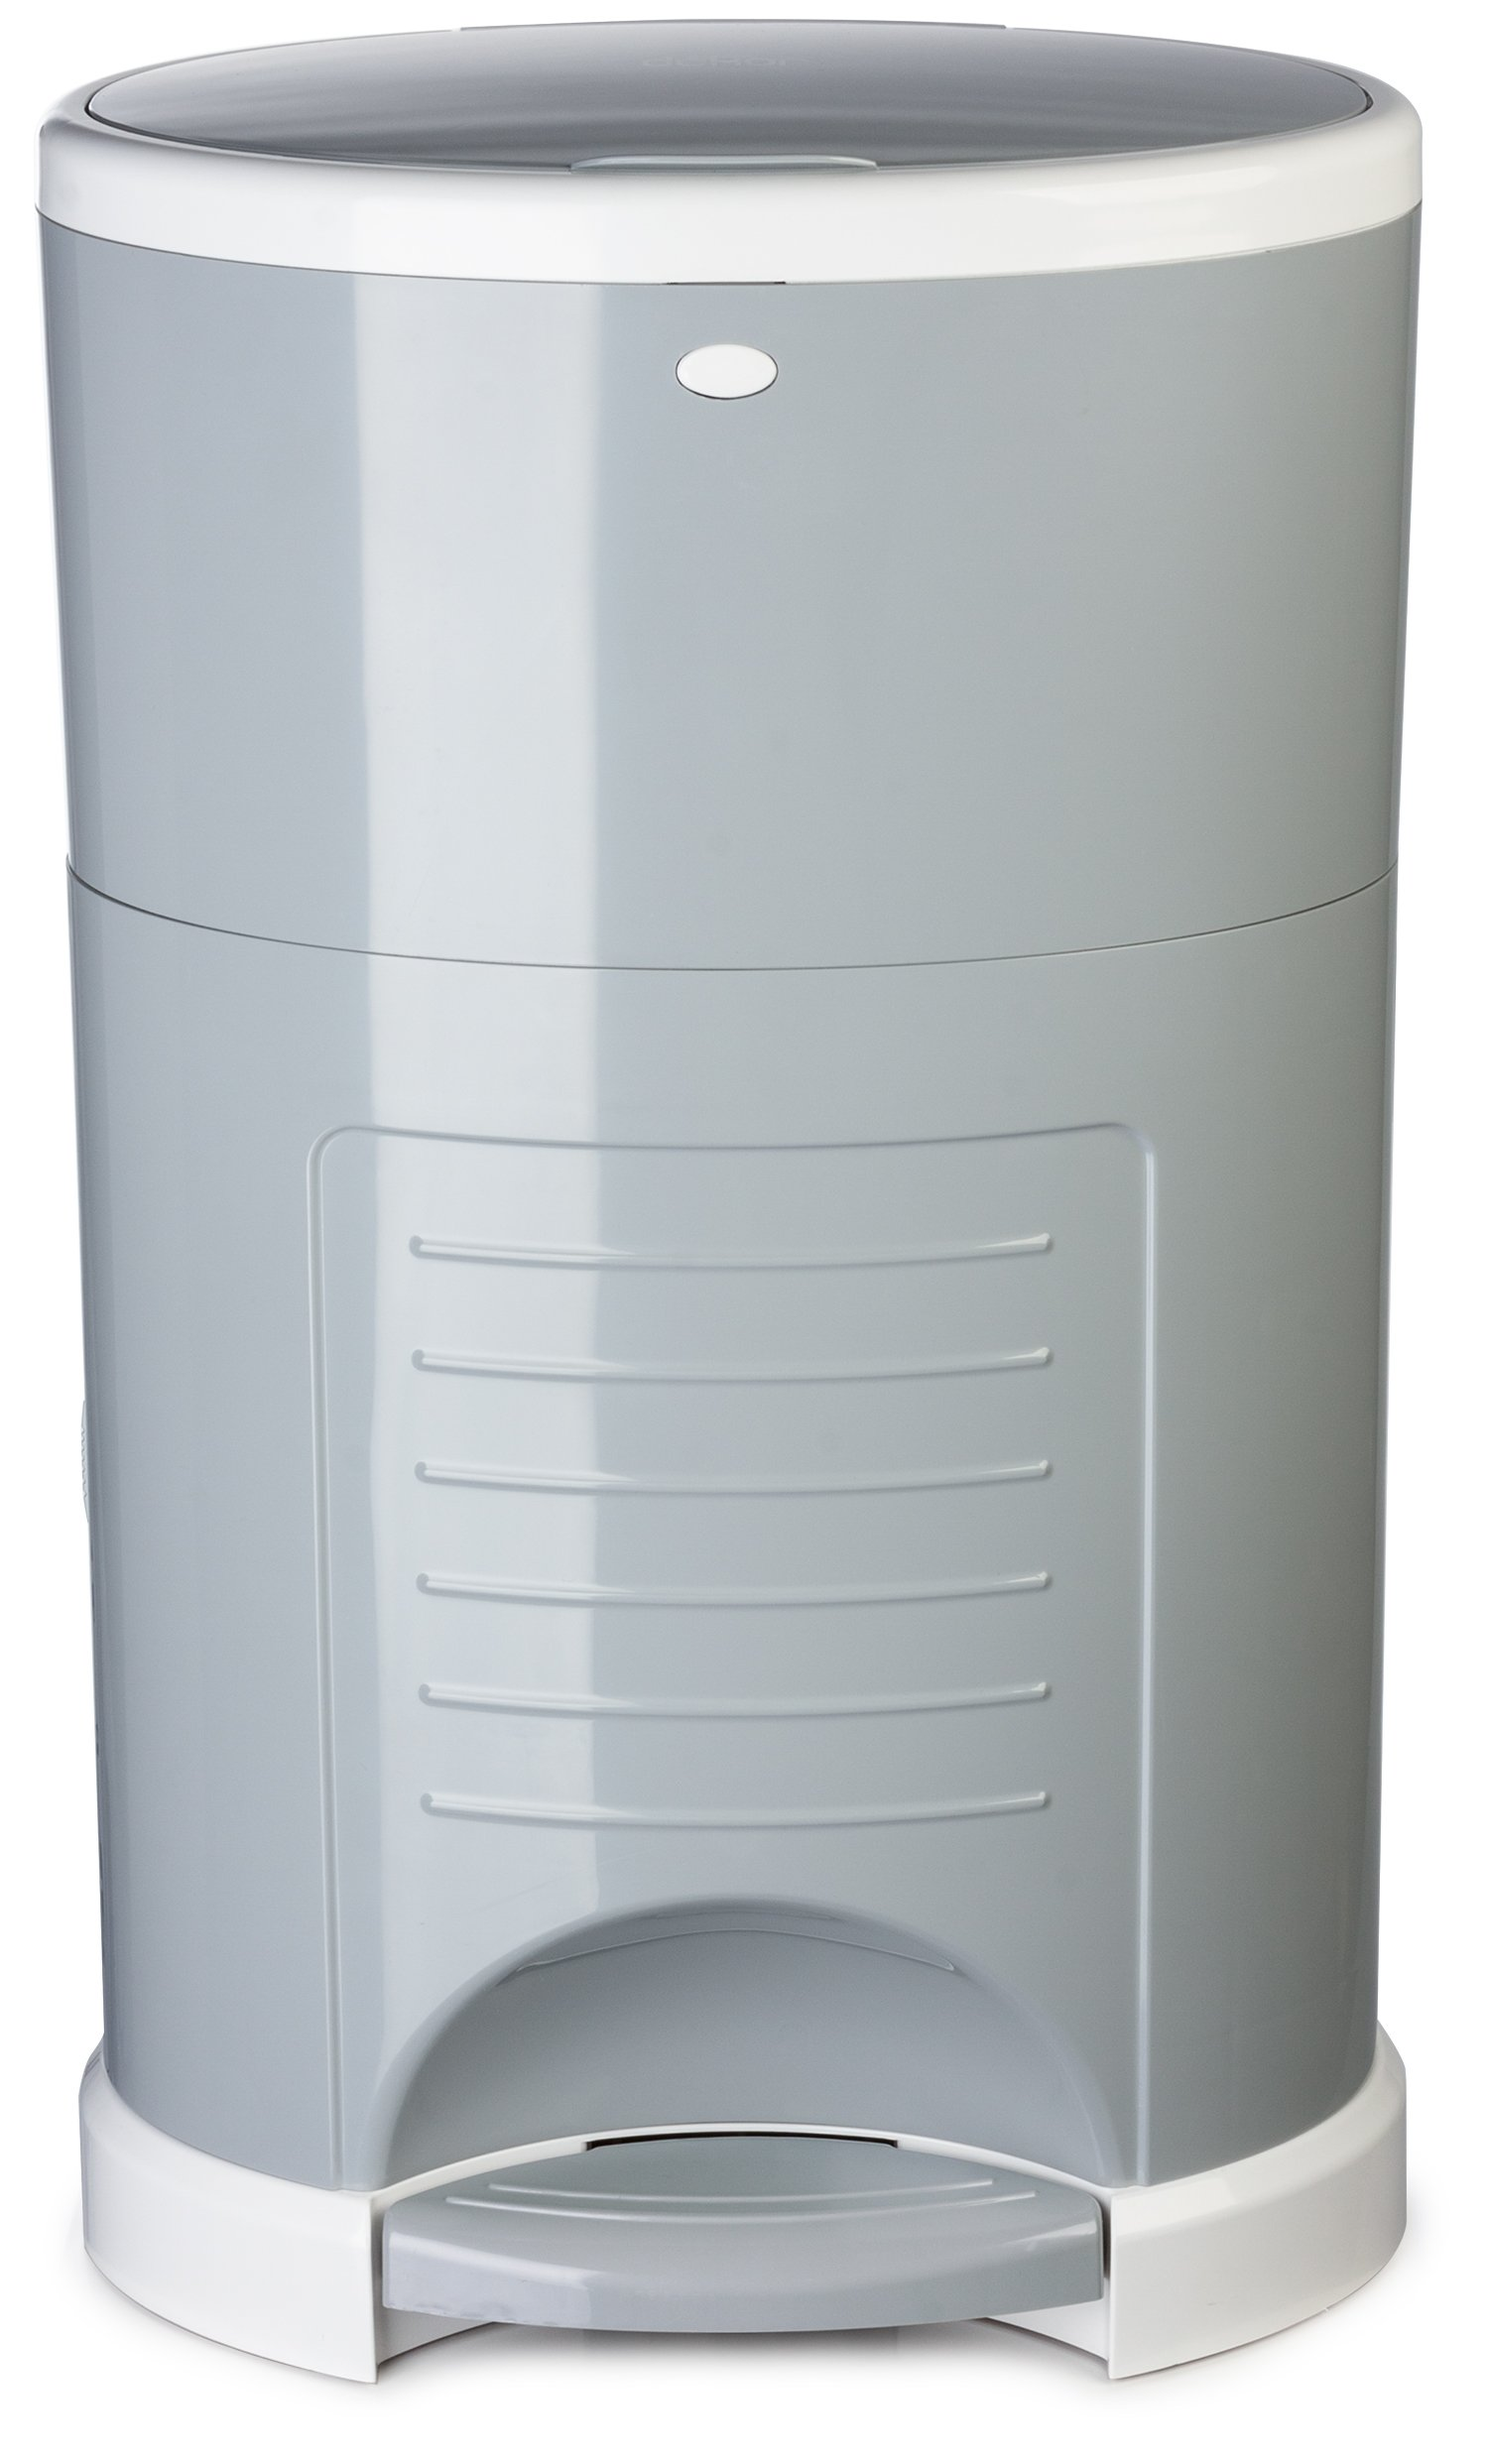 Dekor Plus Hands-Free Diaper Pail   Gray   Easiest to Use   Just Step – Drop – Done   Doesn't Absorb Odors   20 Second Bag Change   Most Economical Refill System  Great for Cloth Diapers